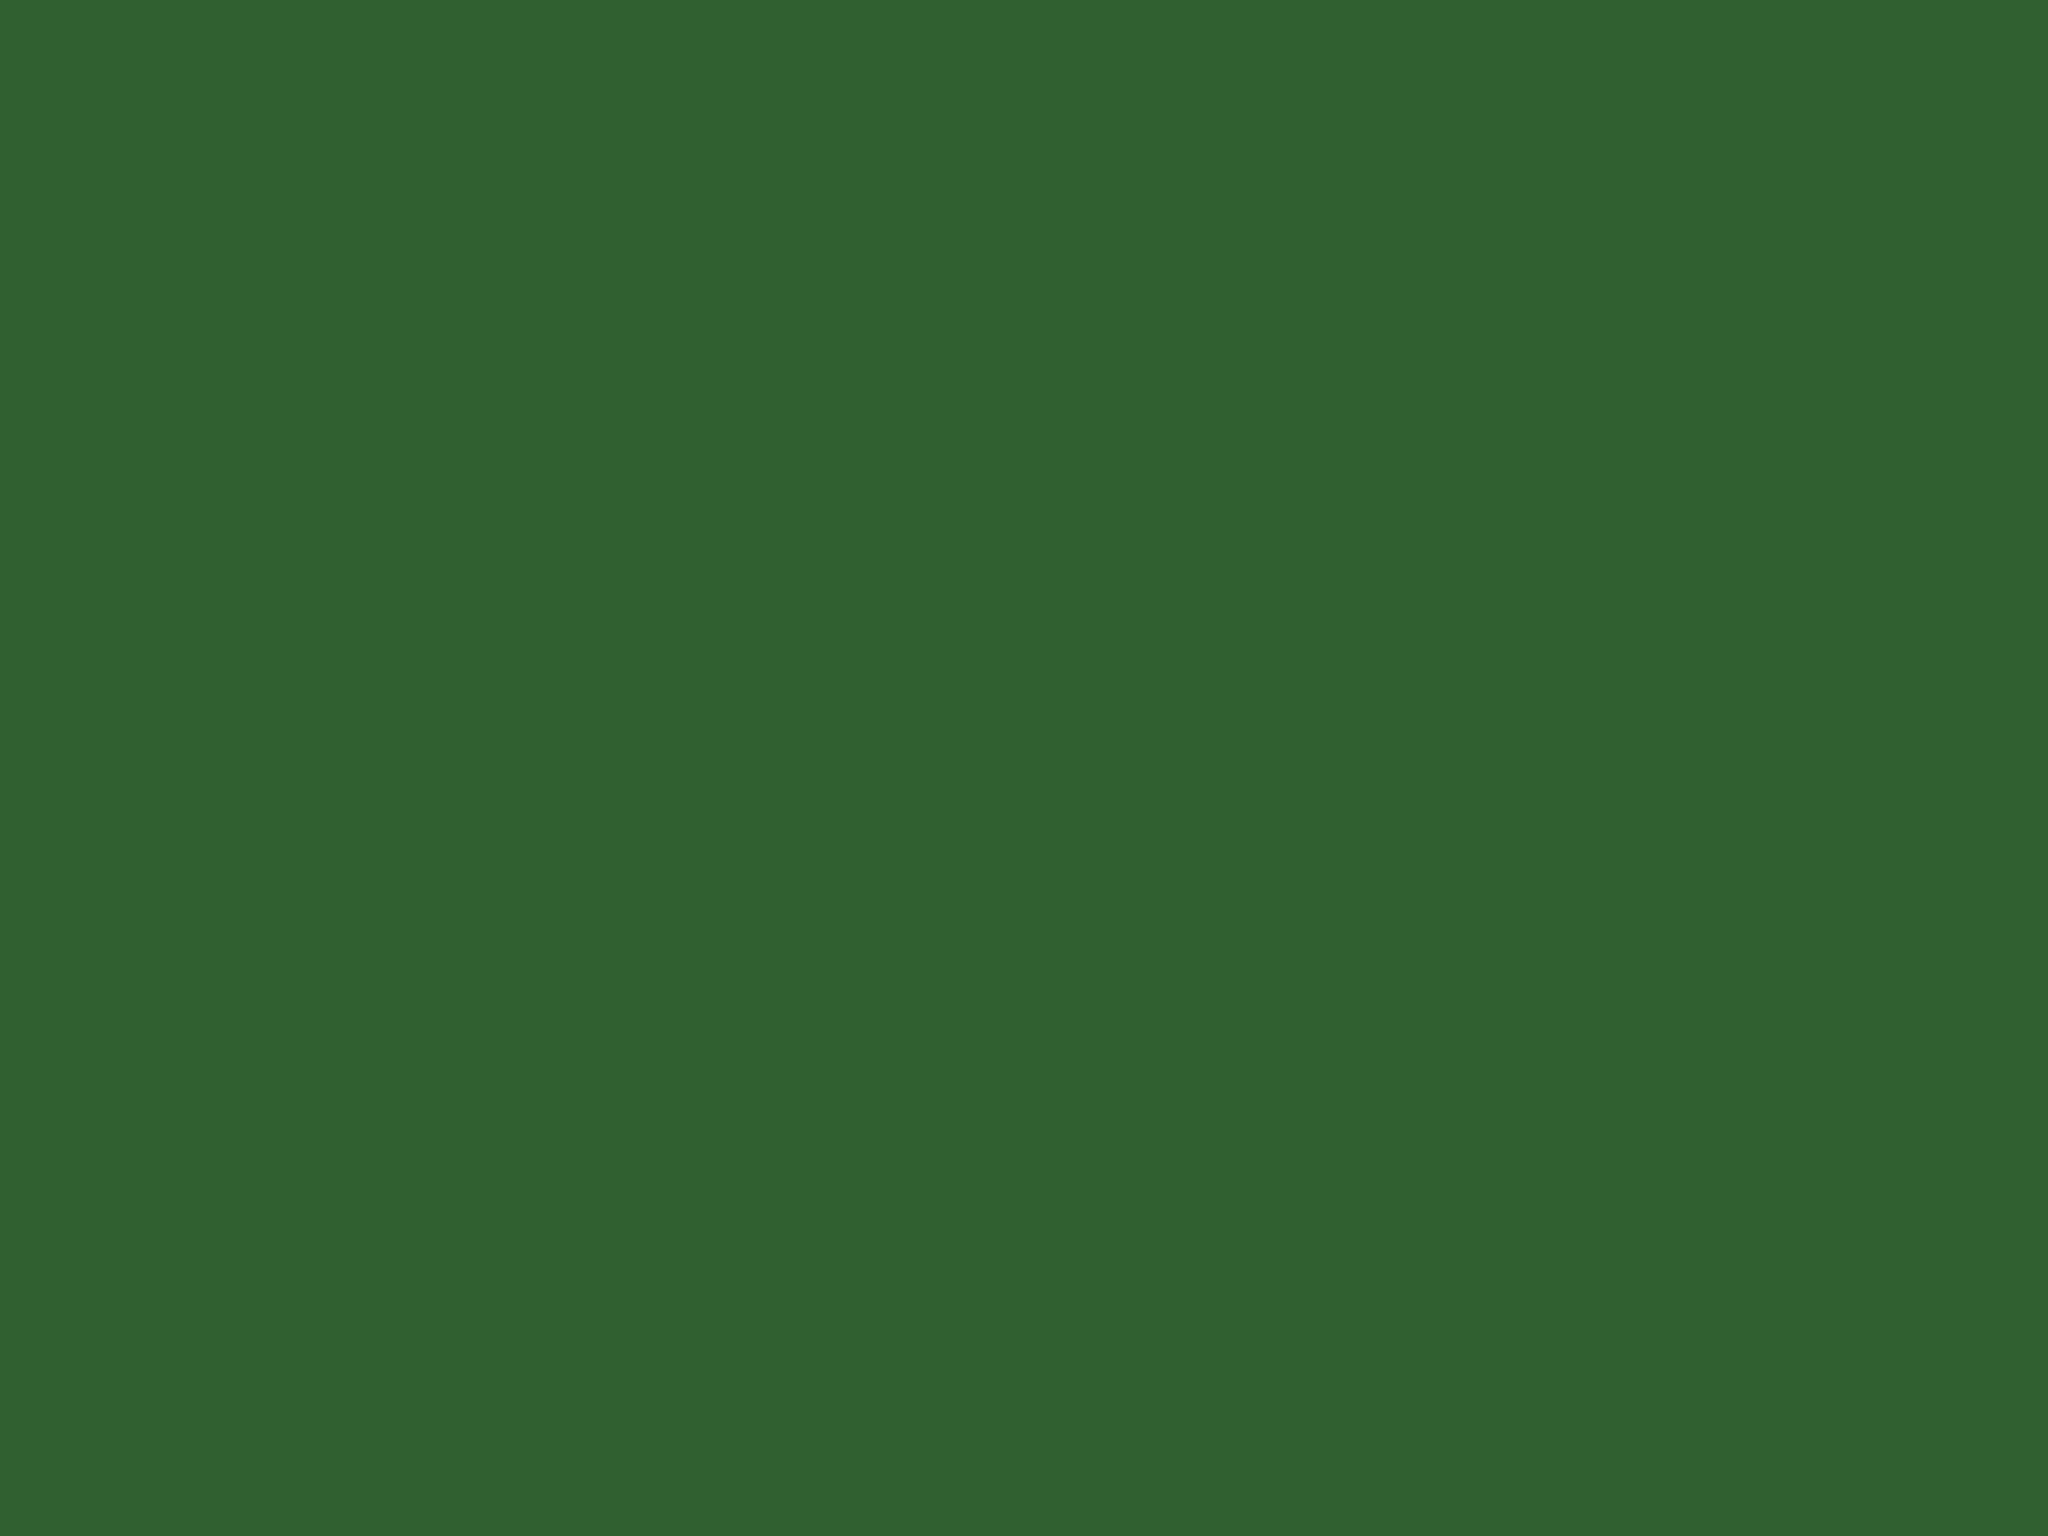 2048x1536 Mughal Green Solid Color Background